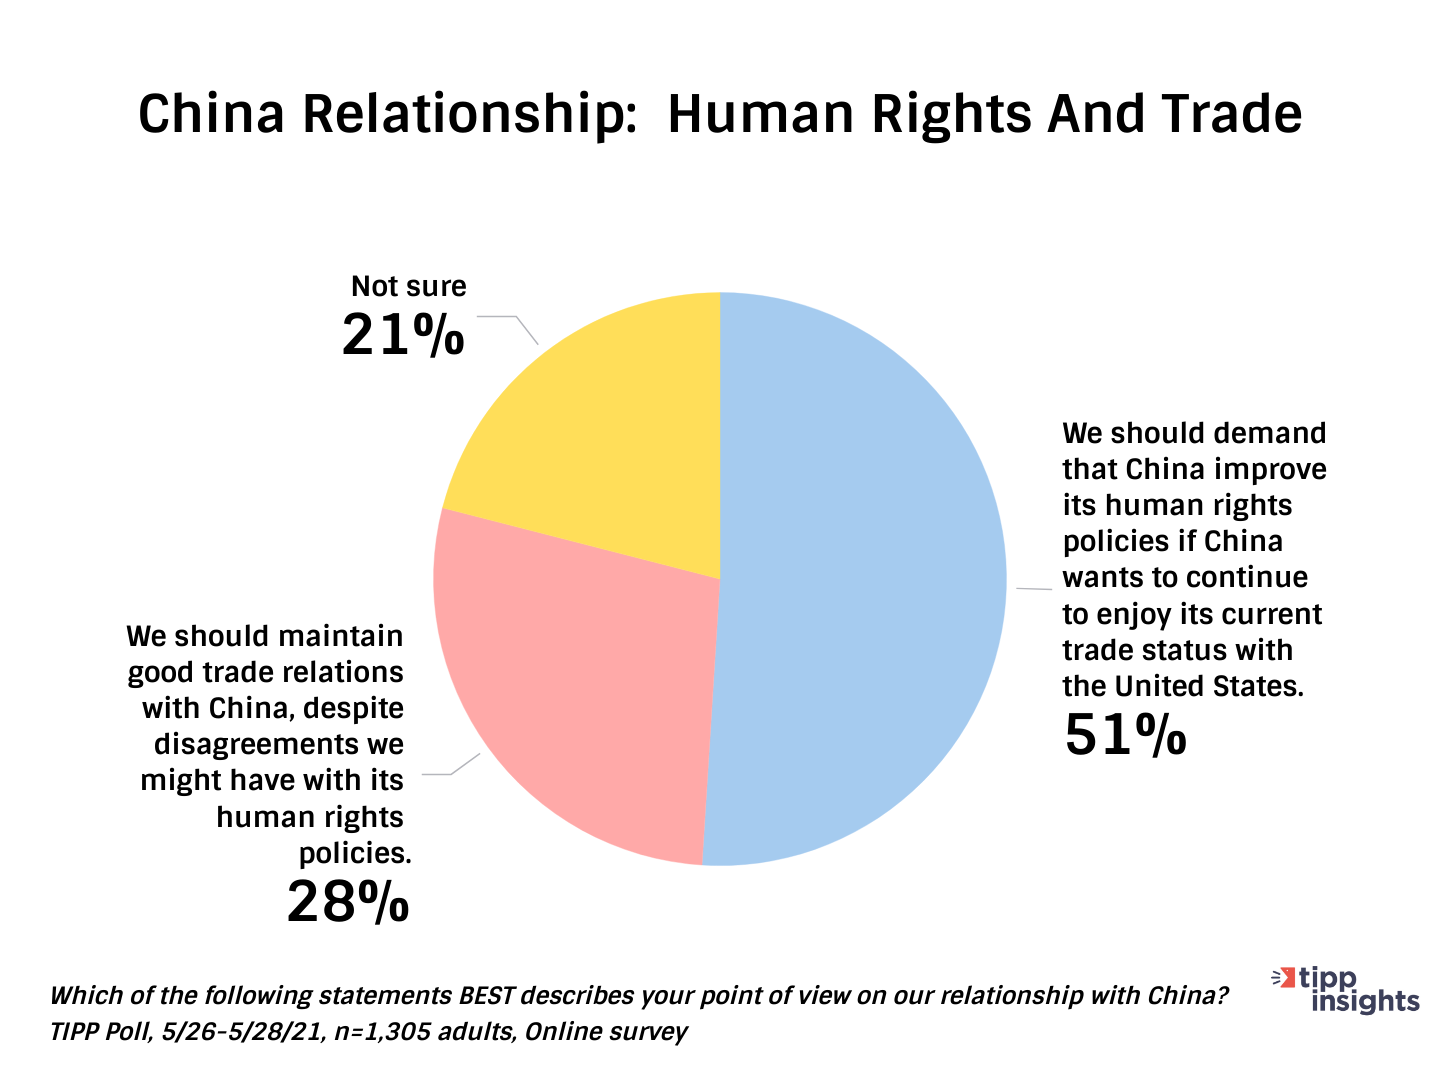 American's Opinion on Trade With China And Human Rights - Chart